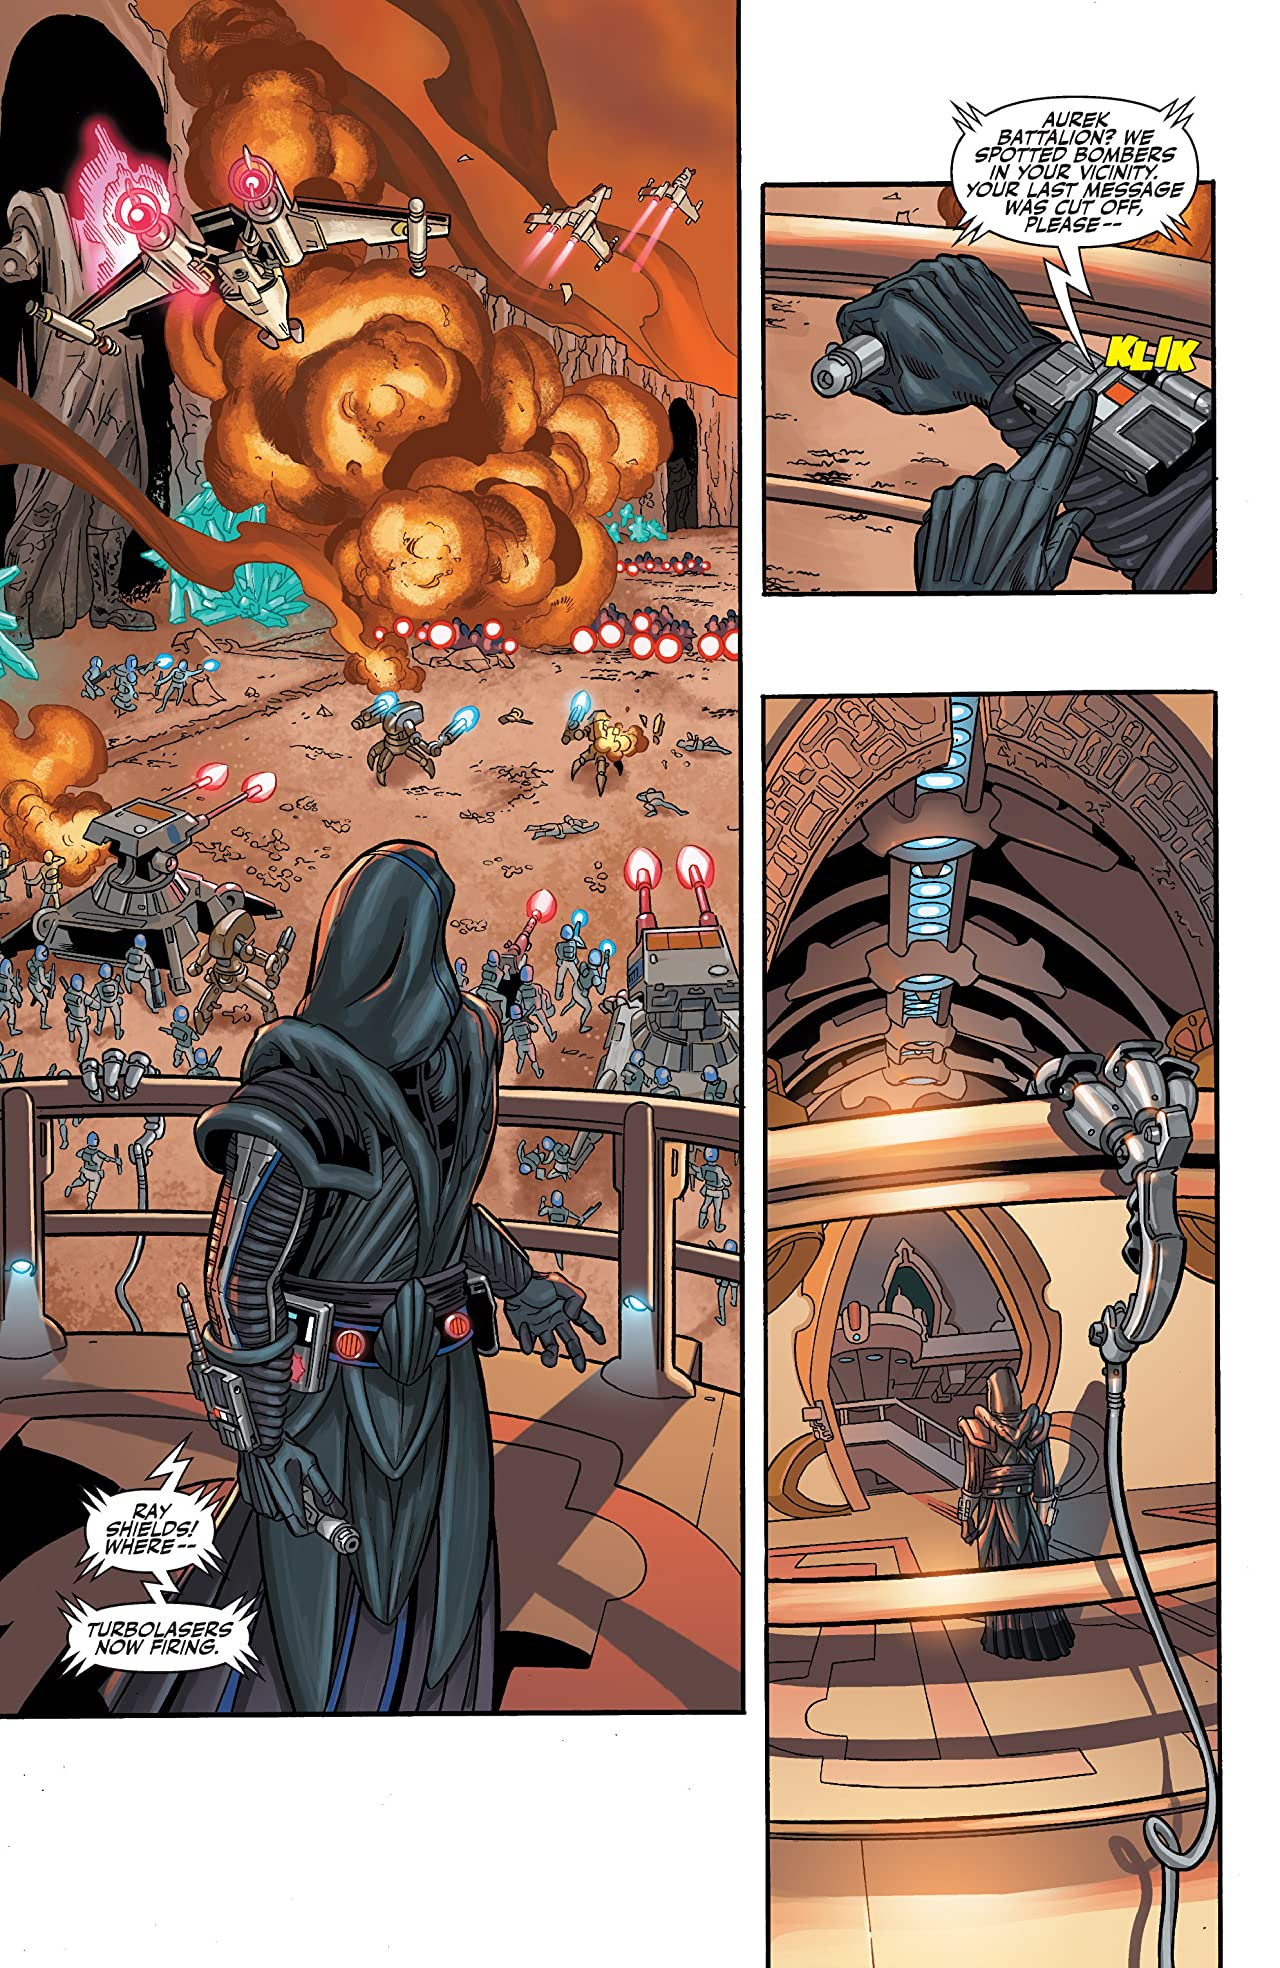 Star Wars: The Old Republic (2010) #4